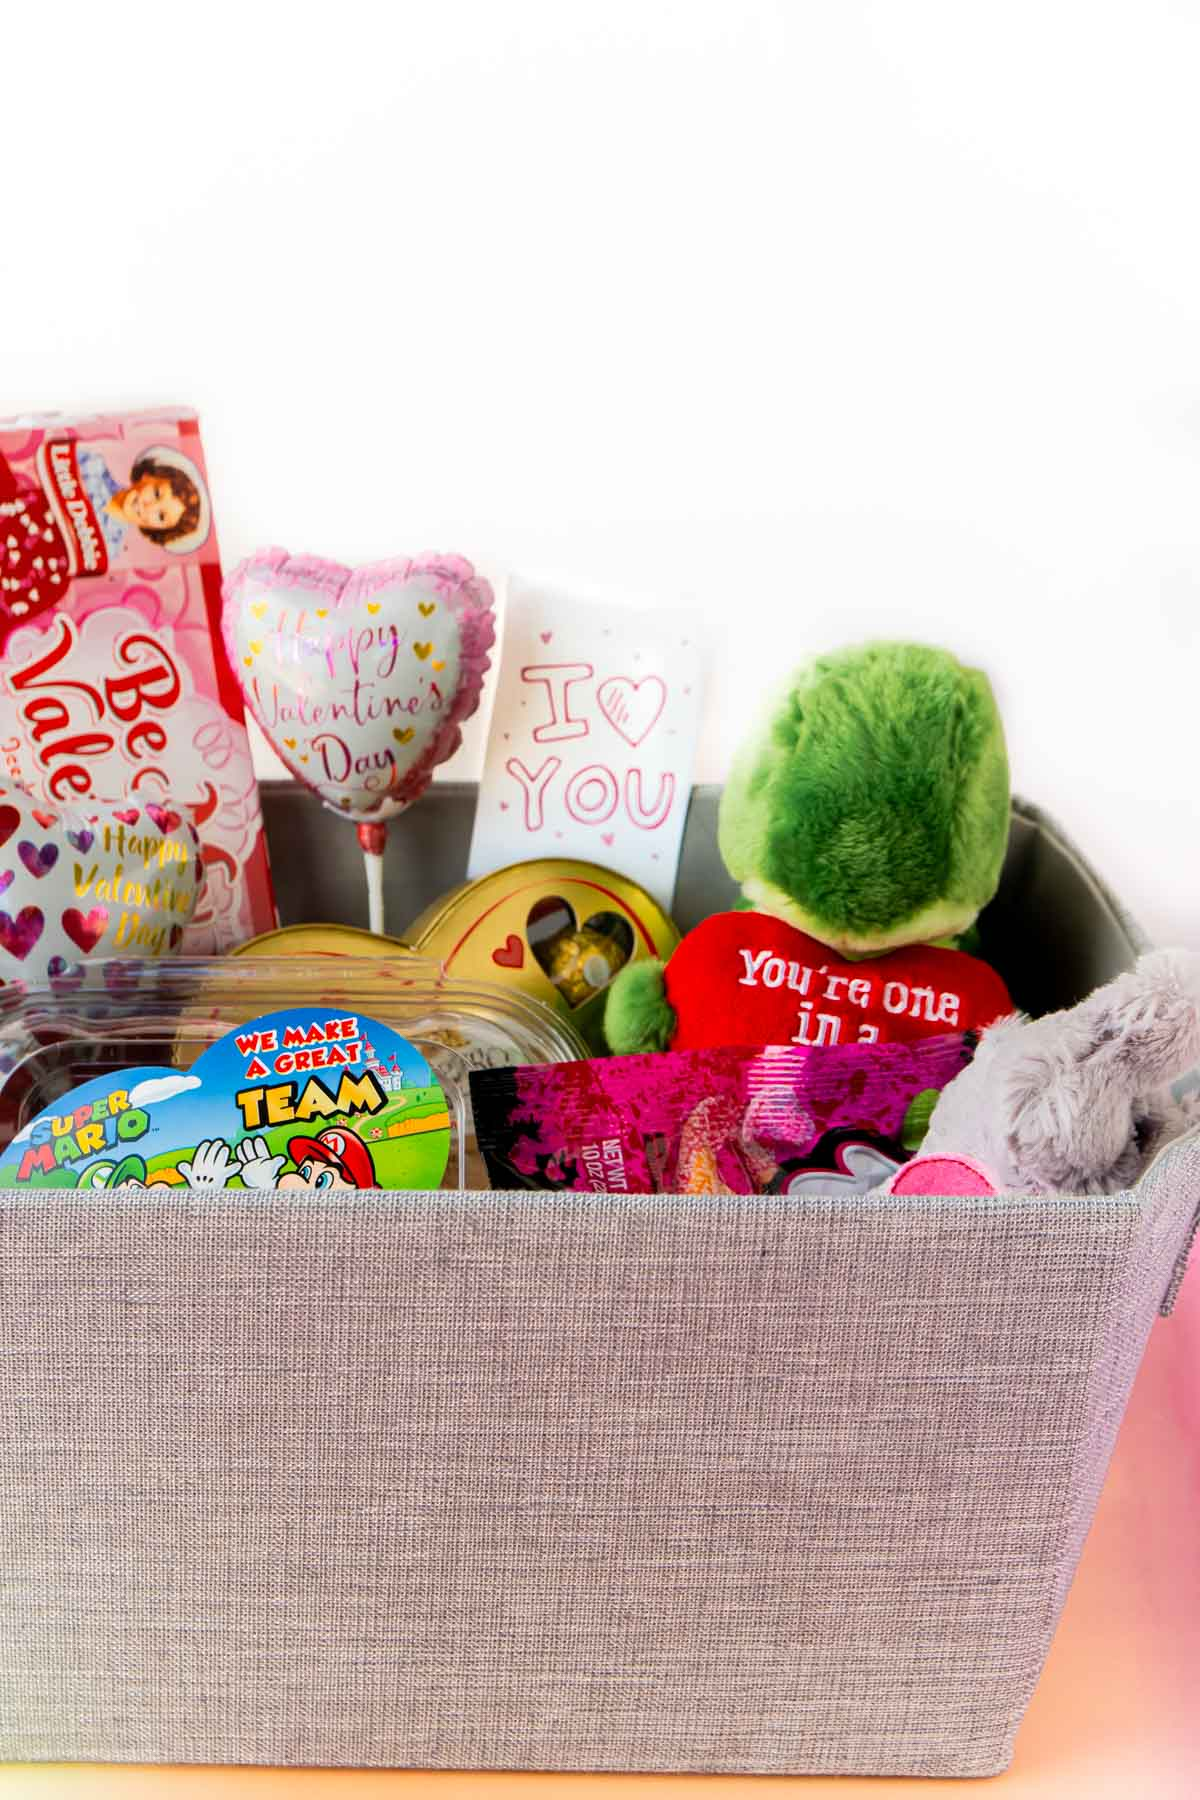 Gray gift basket with stuffed animals coming out